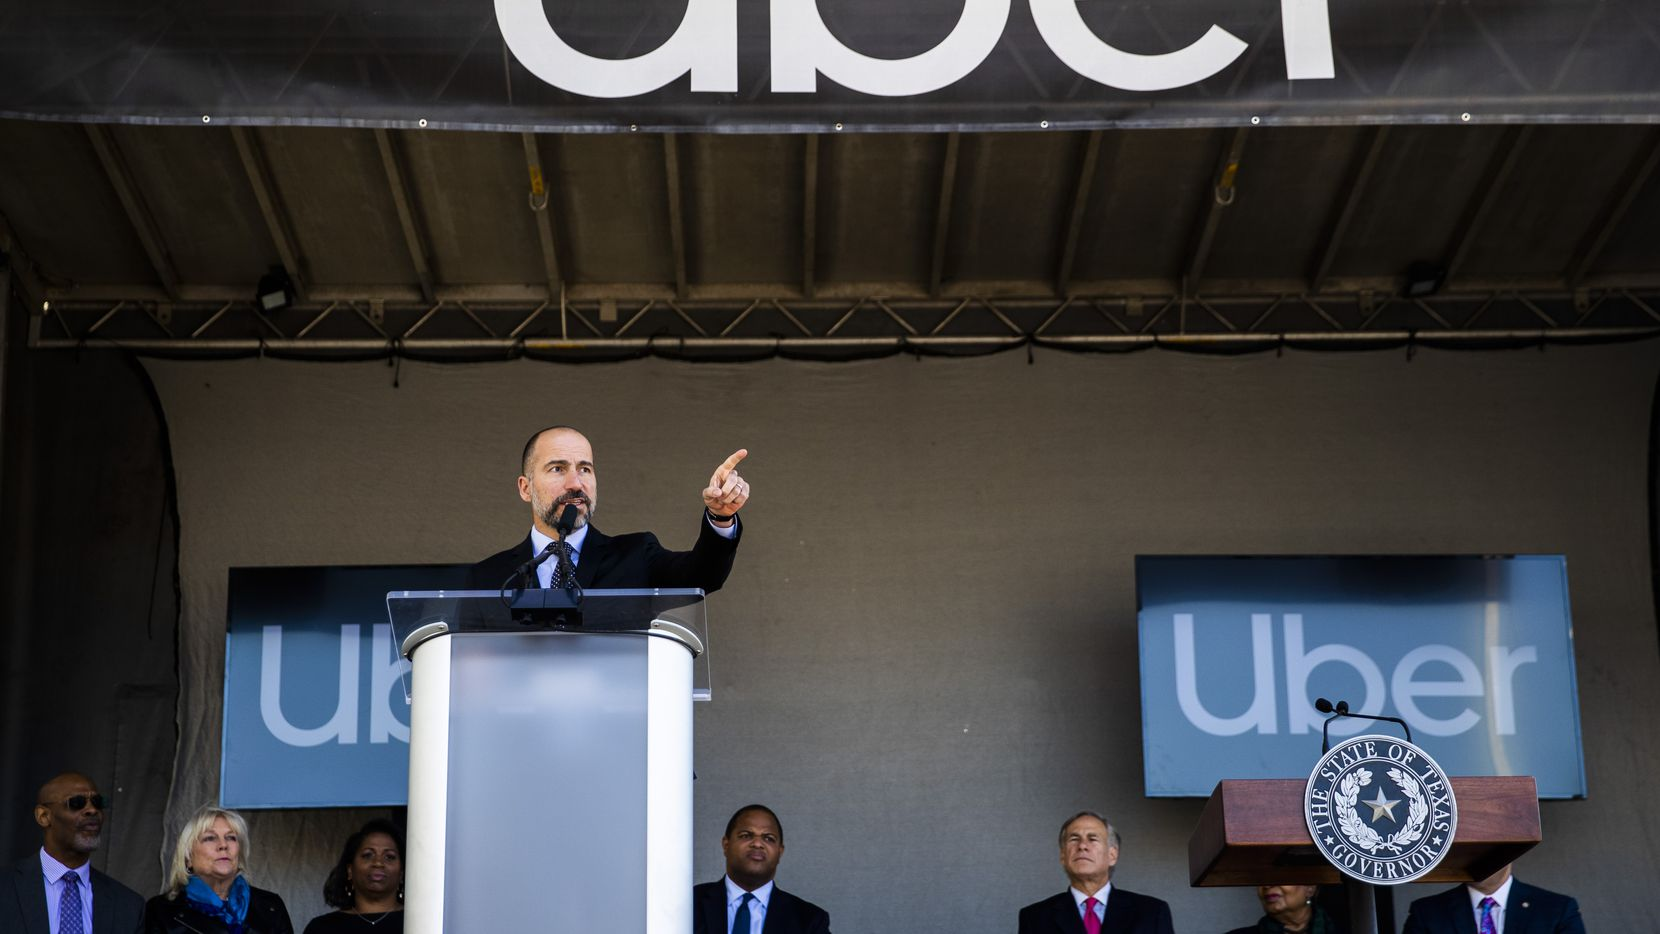 Uber CEO Dara Khosrowshahi speaks at a ground breaking ceremony for a new Uber Deep Ellum office on Friday, November 1, 2019 in Dallas. (Ashley Landis/The Dallas Morning News)